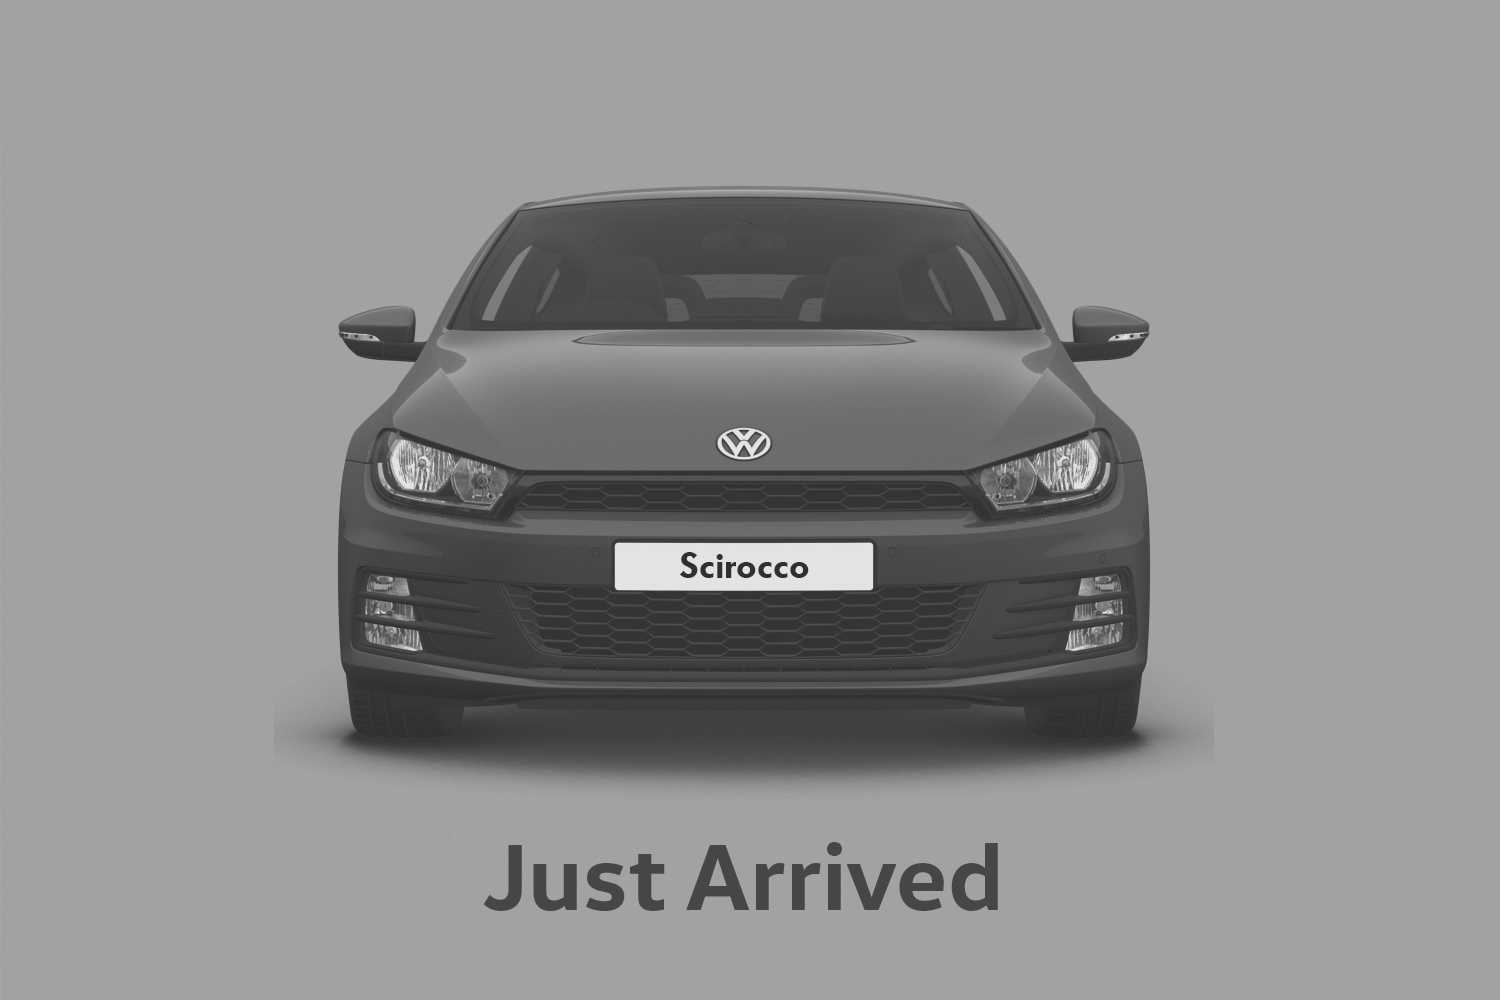 Volkswagen Scirocco 2.0 TDI GT 3-Dr Coupe